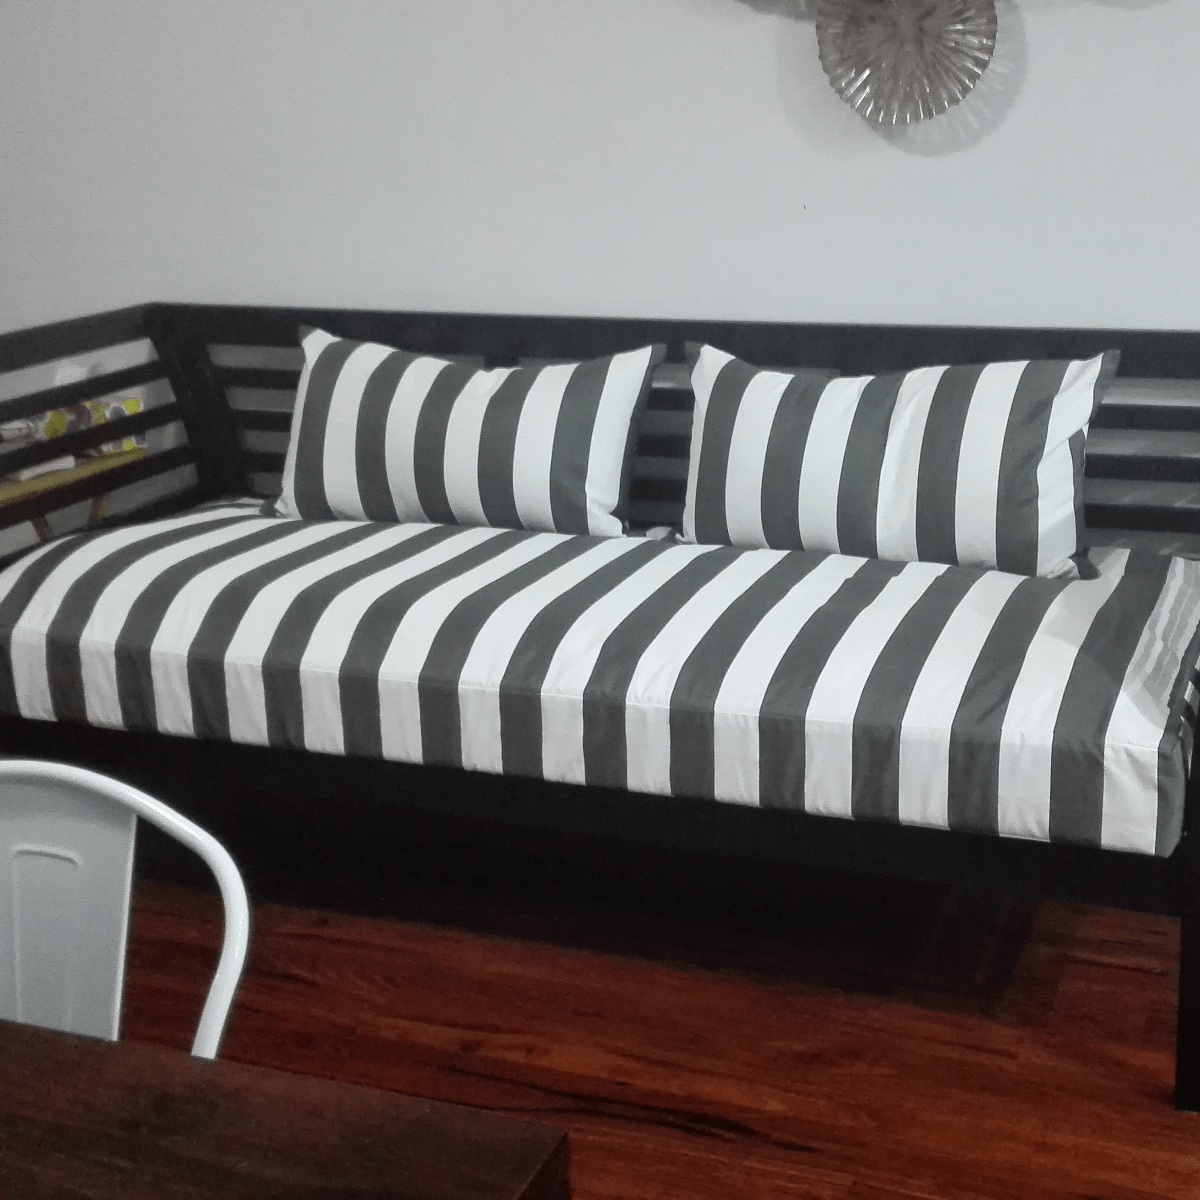 Cushions for Outdoor Chairs melbourne